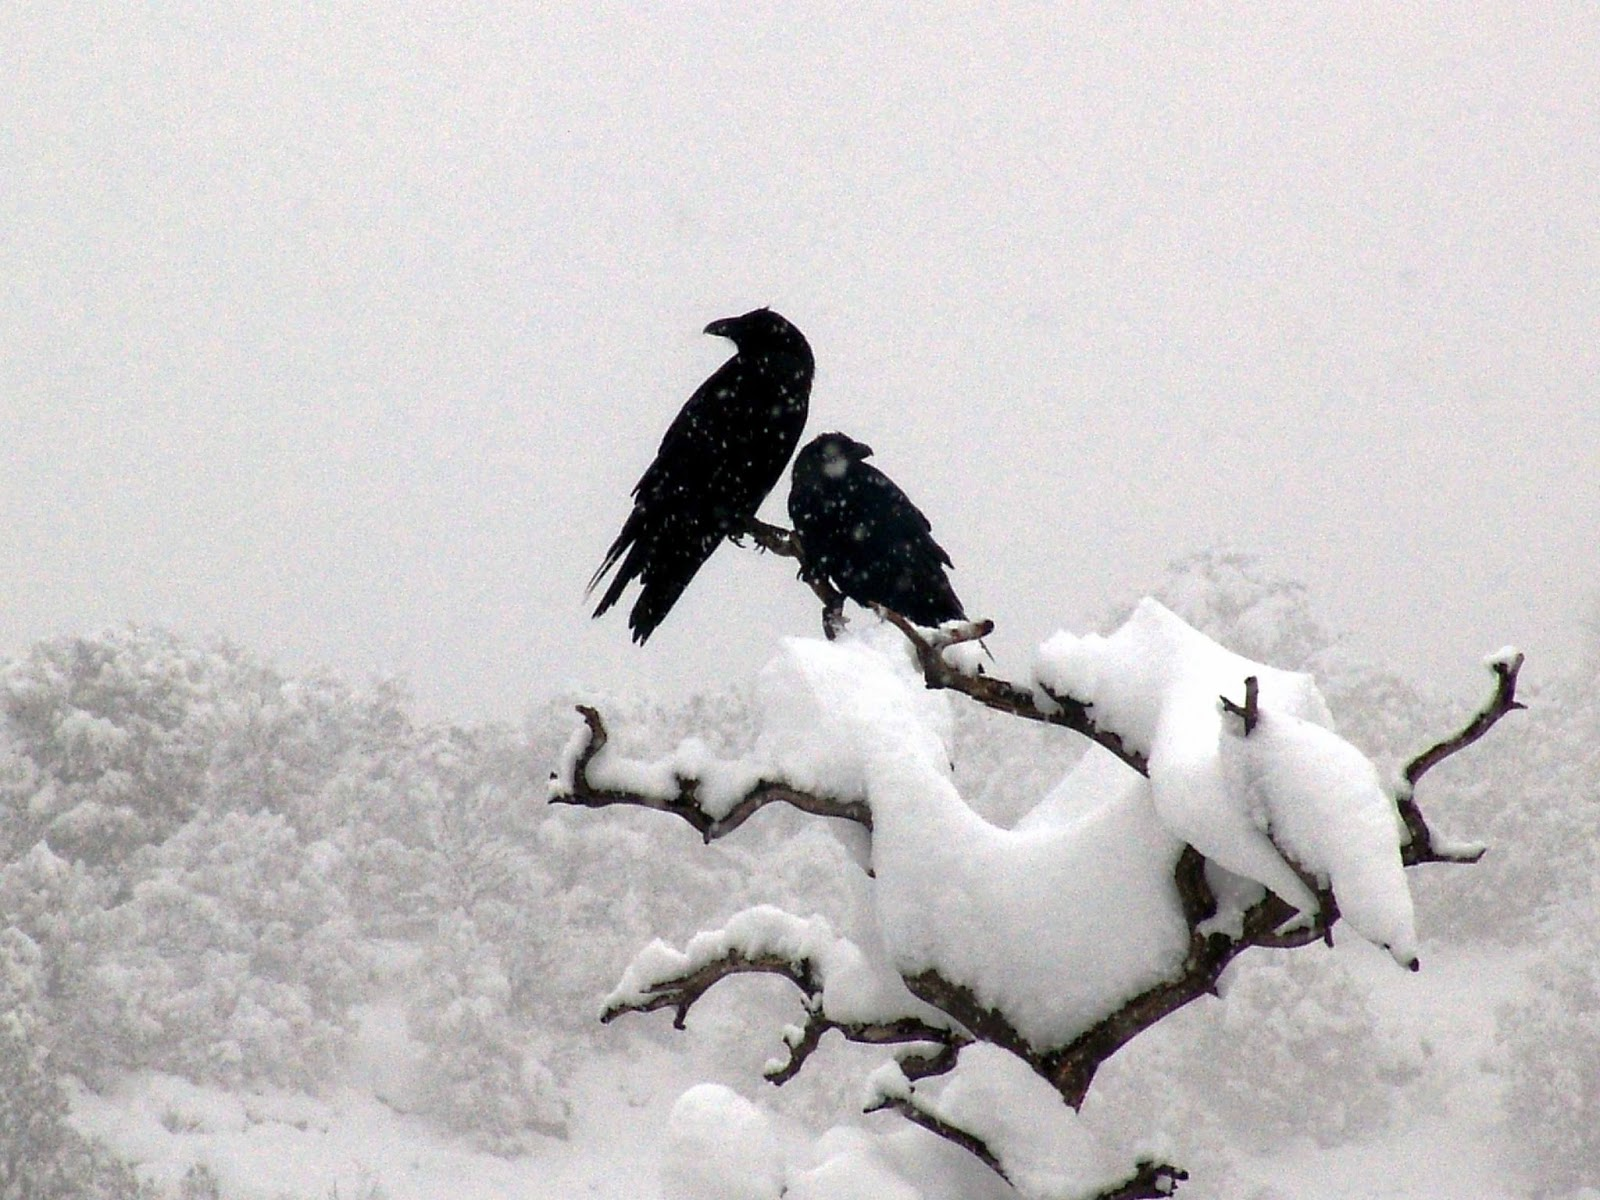 crow in snow wallpapers hd - photo #3